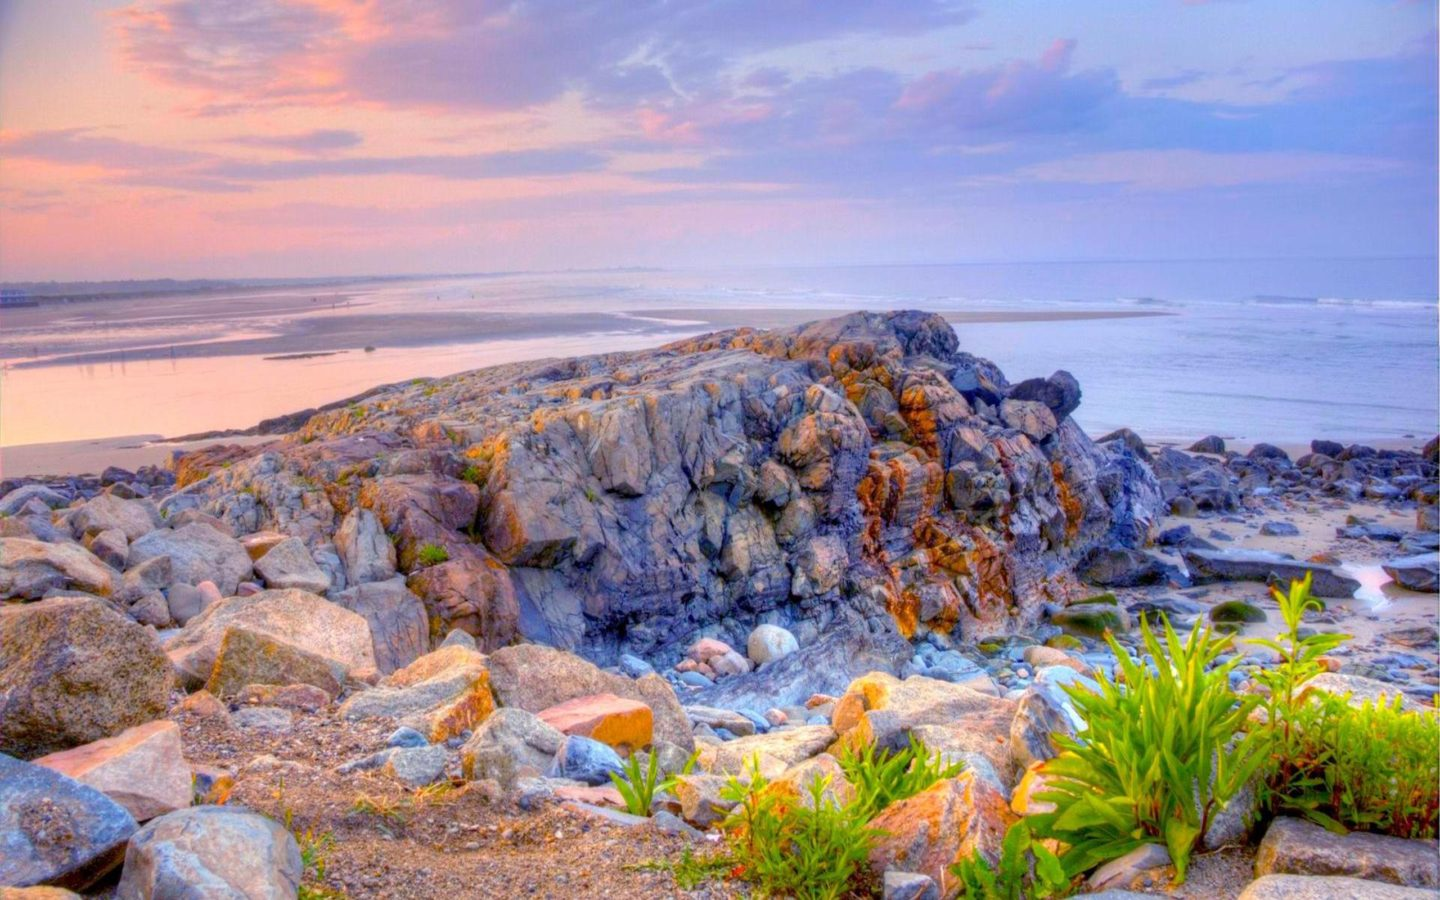 Exotic Cars Wallpaper 1920x1080 Rock Wall On The Beach At Jacks Cove In Maine Hdr Hd